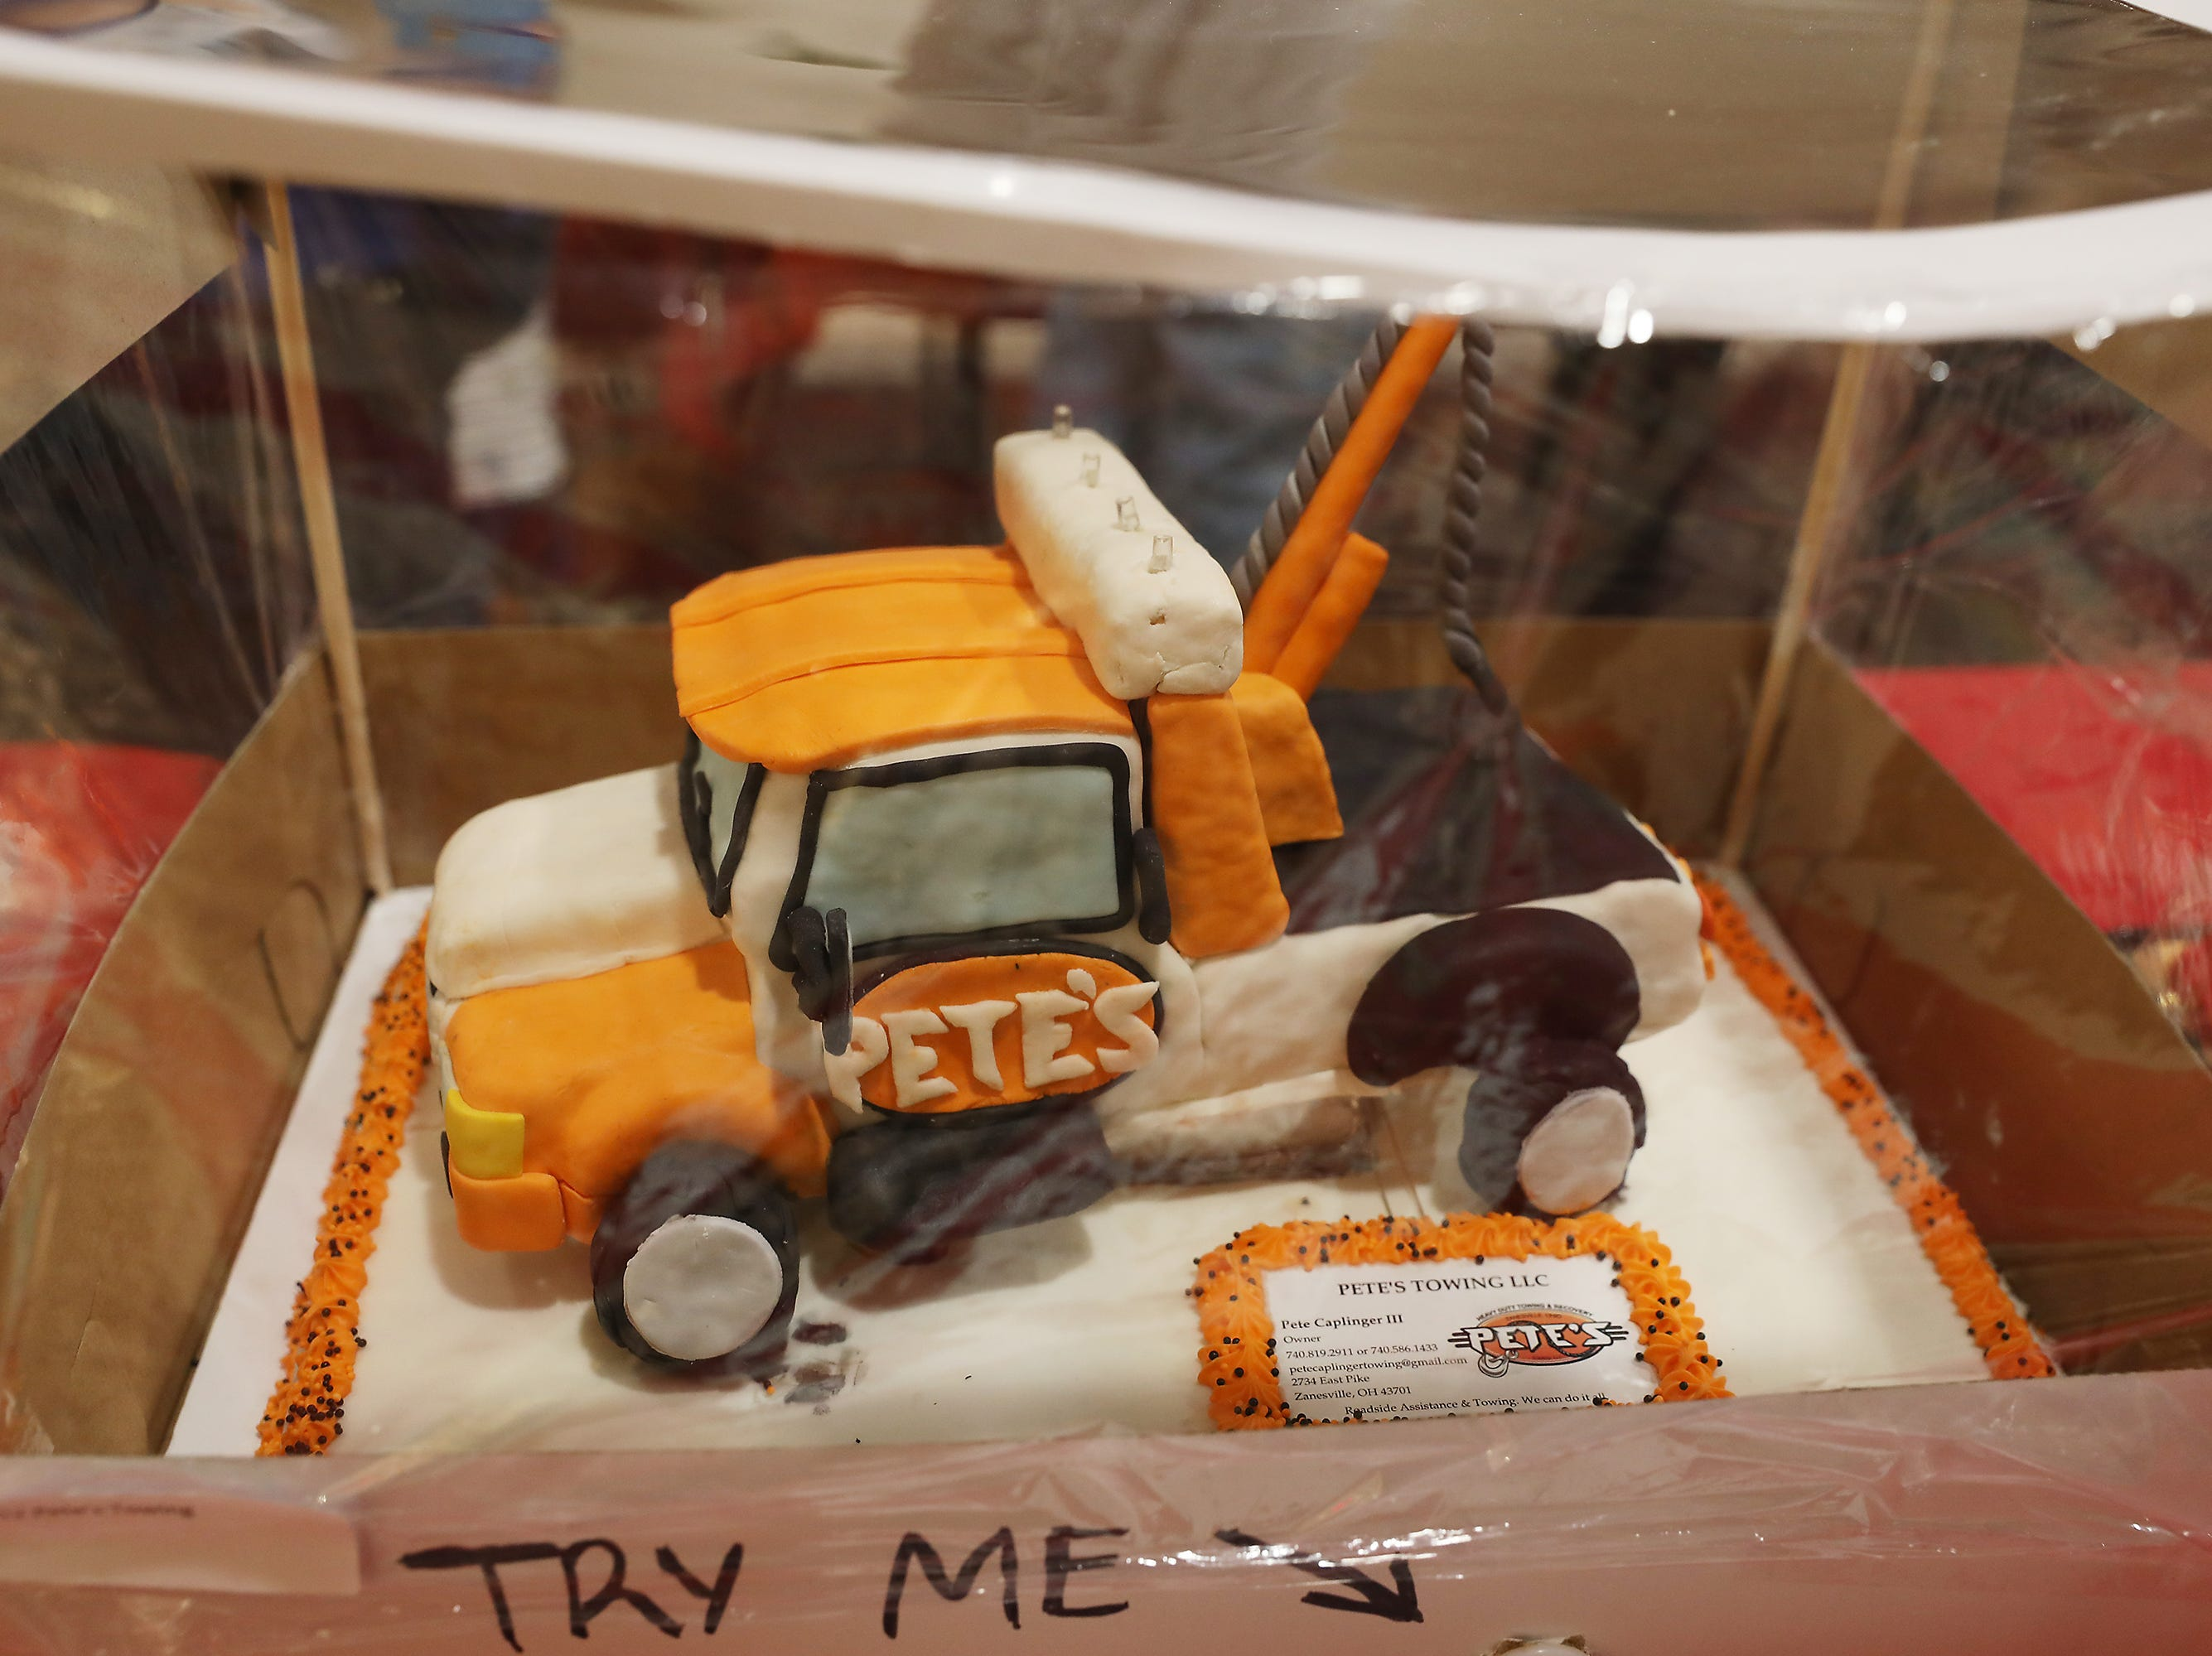 8:15 A.M. Friday cake 212 Pete's Towing - Oil change, in town tow; $124